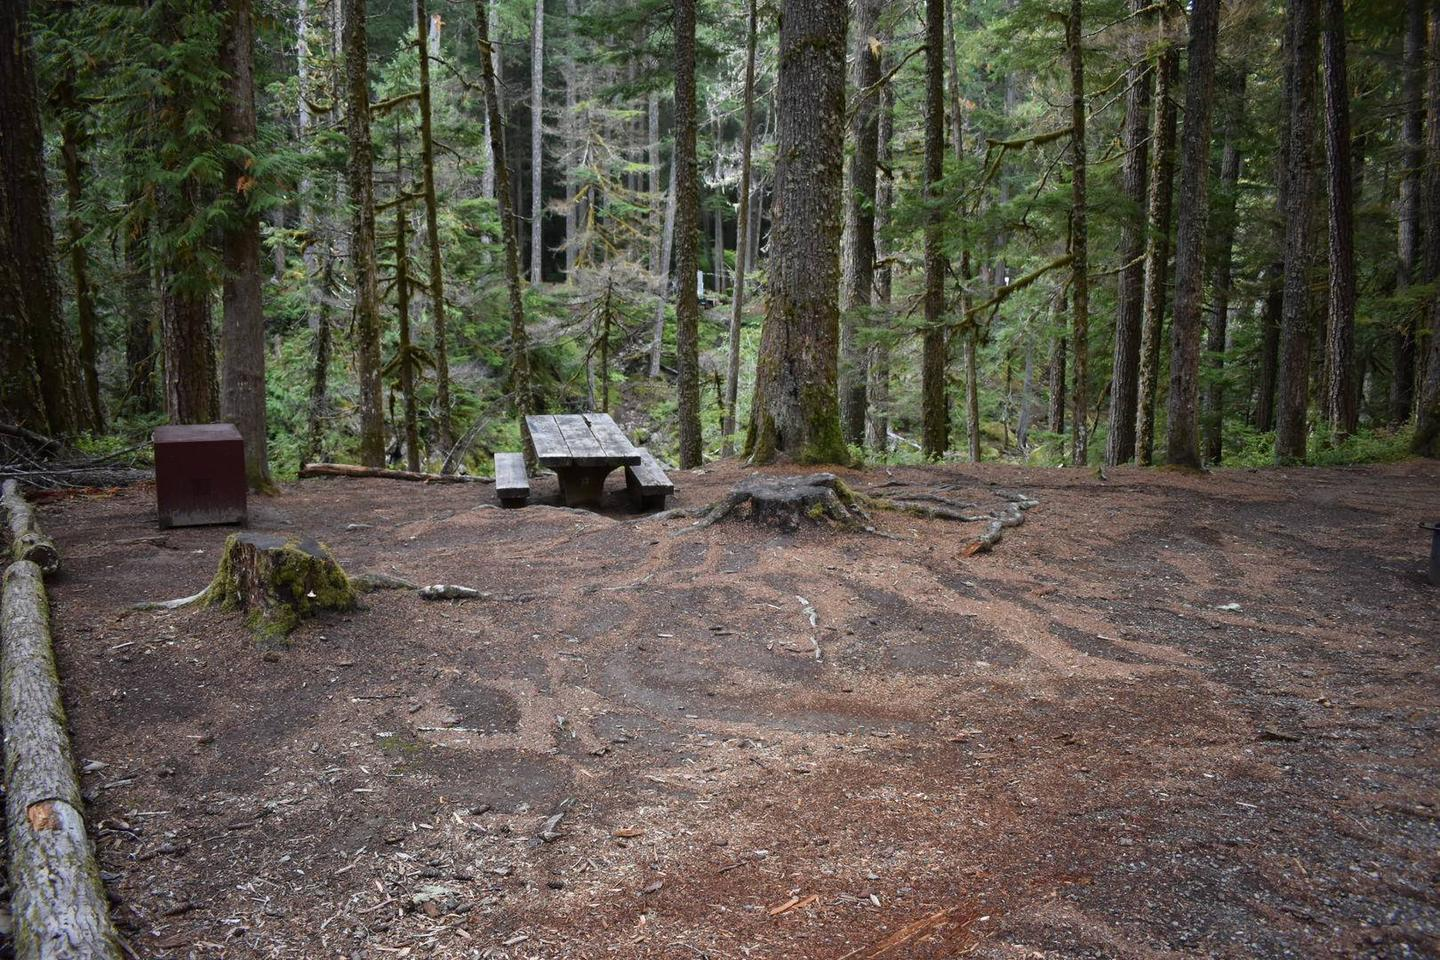 Campers are provided with a picnic table, fire pit, and food storage box.